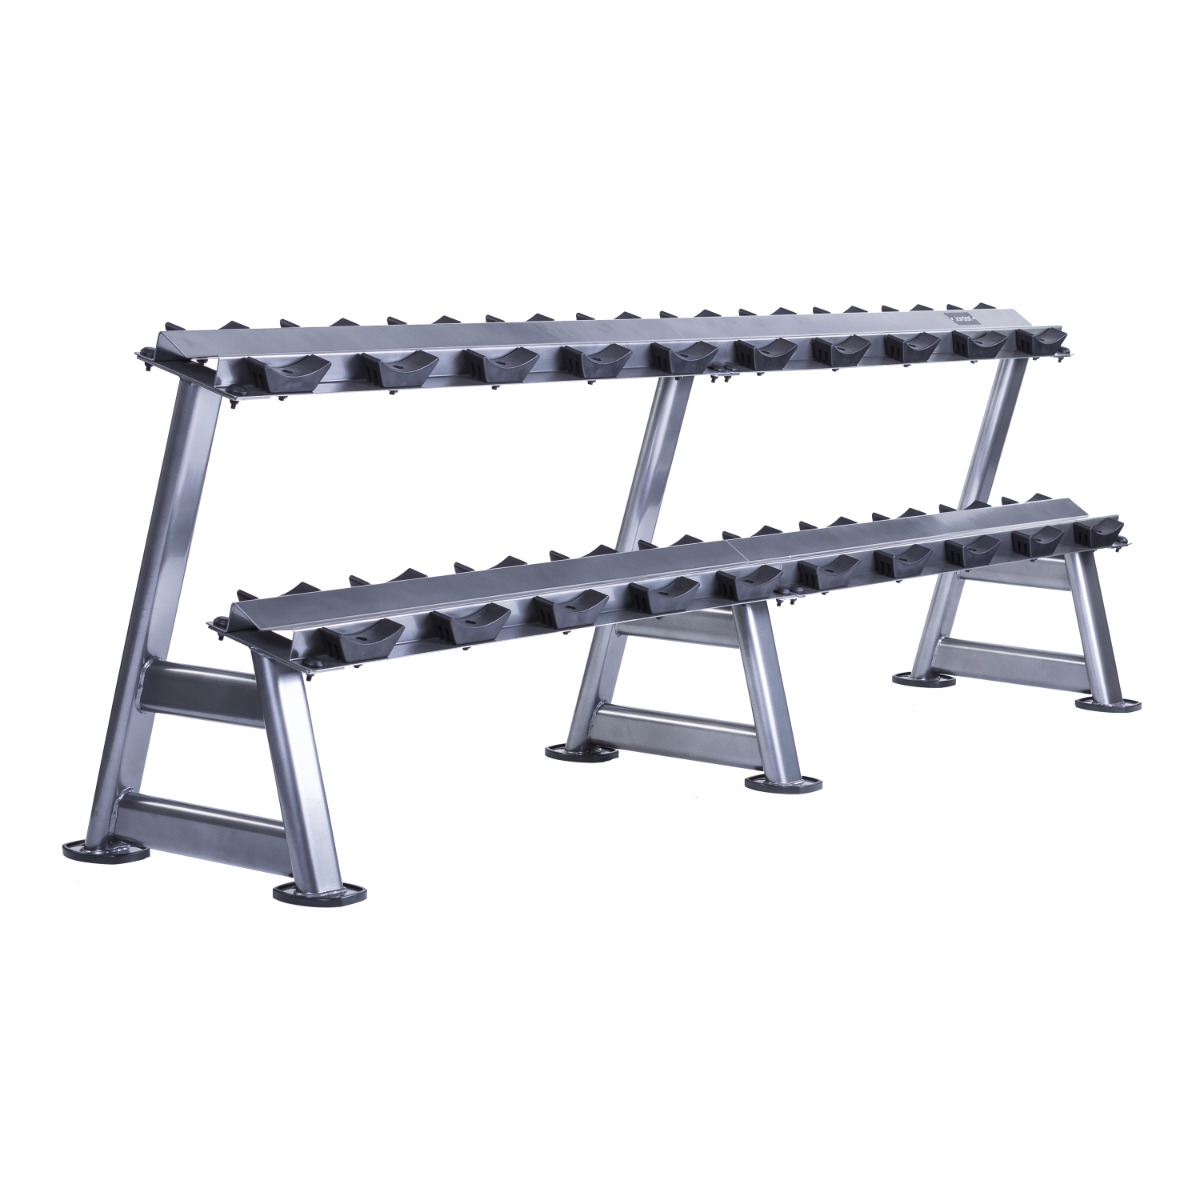 10 Pair Dumbbell Rack with Saddles (2 Tier)